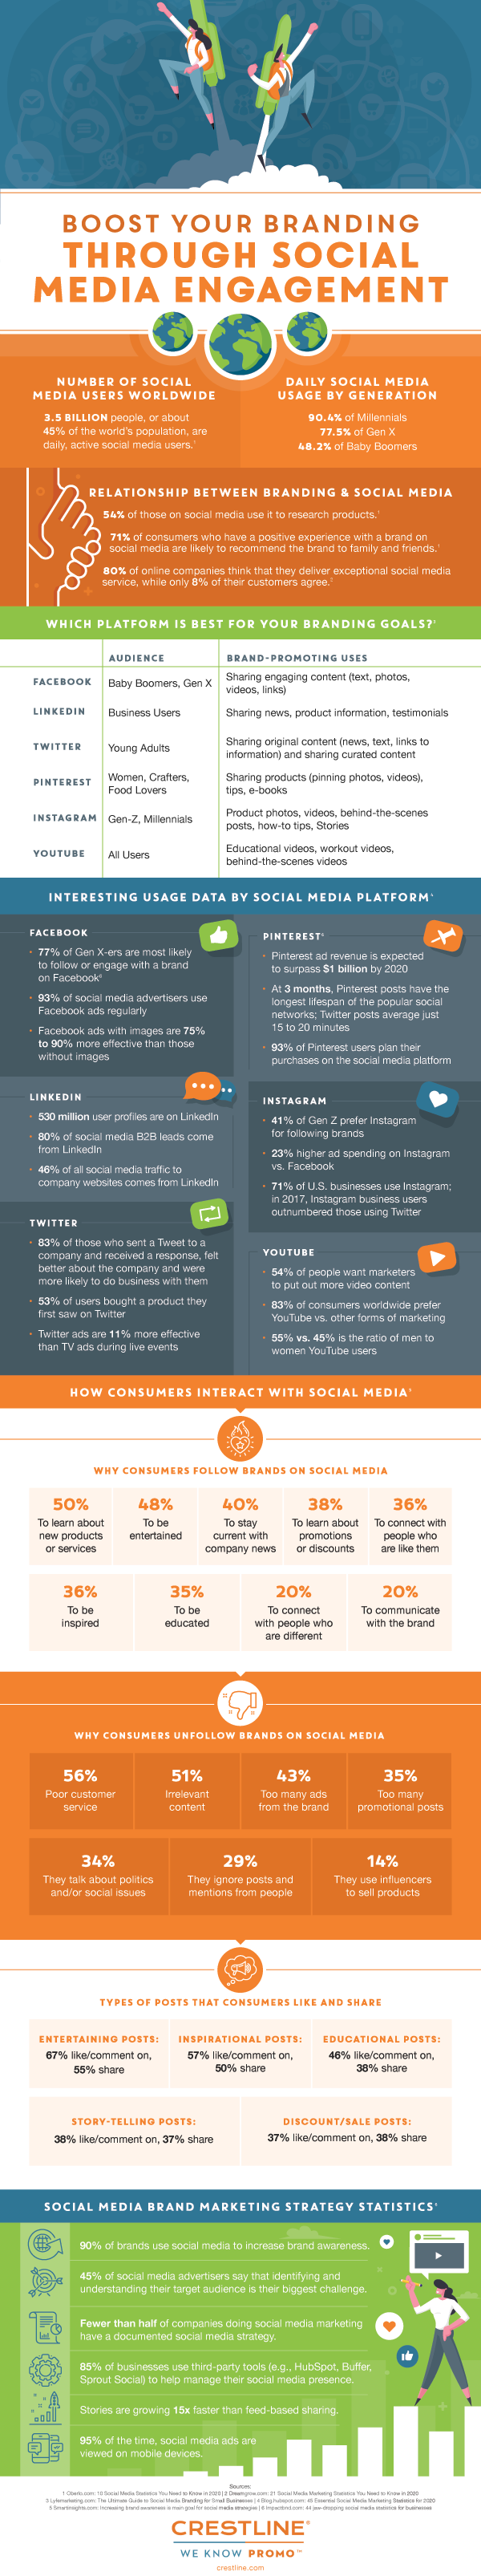 How to boost branding through social media engagement